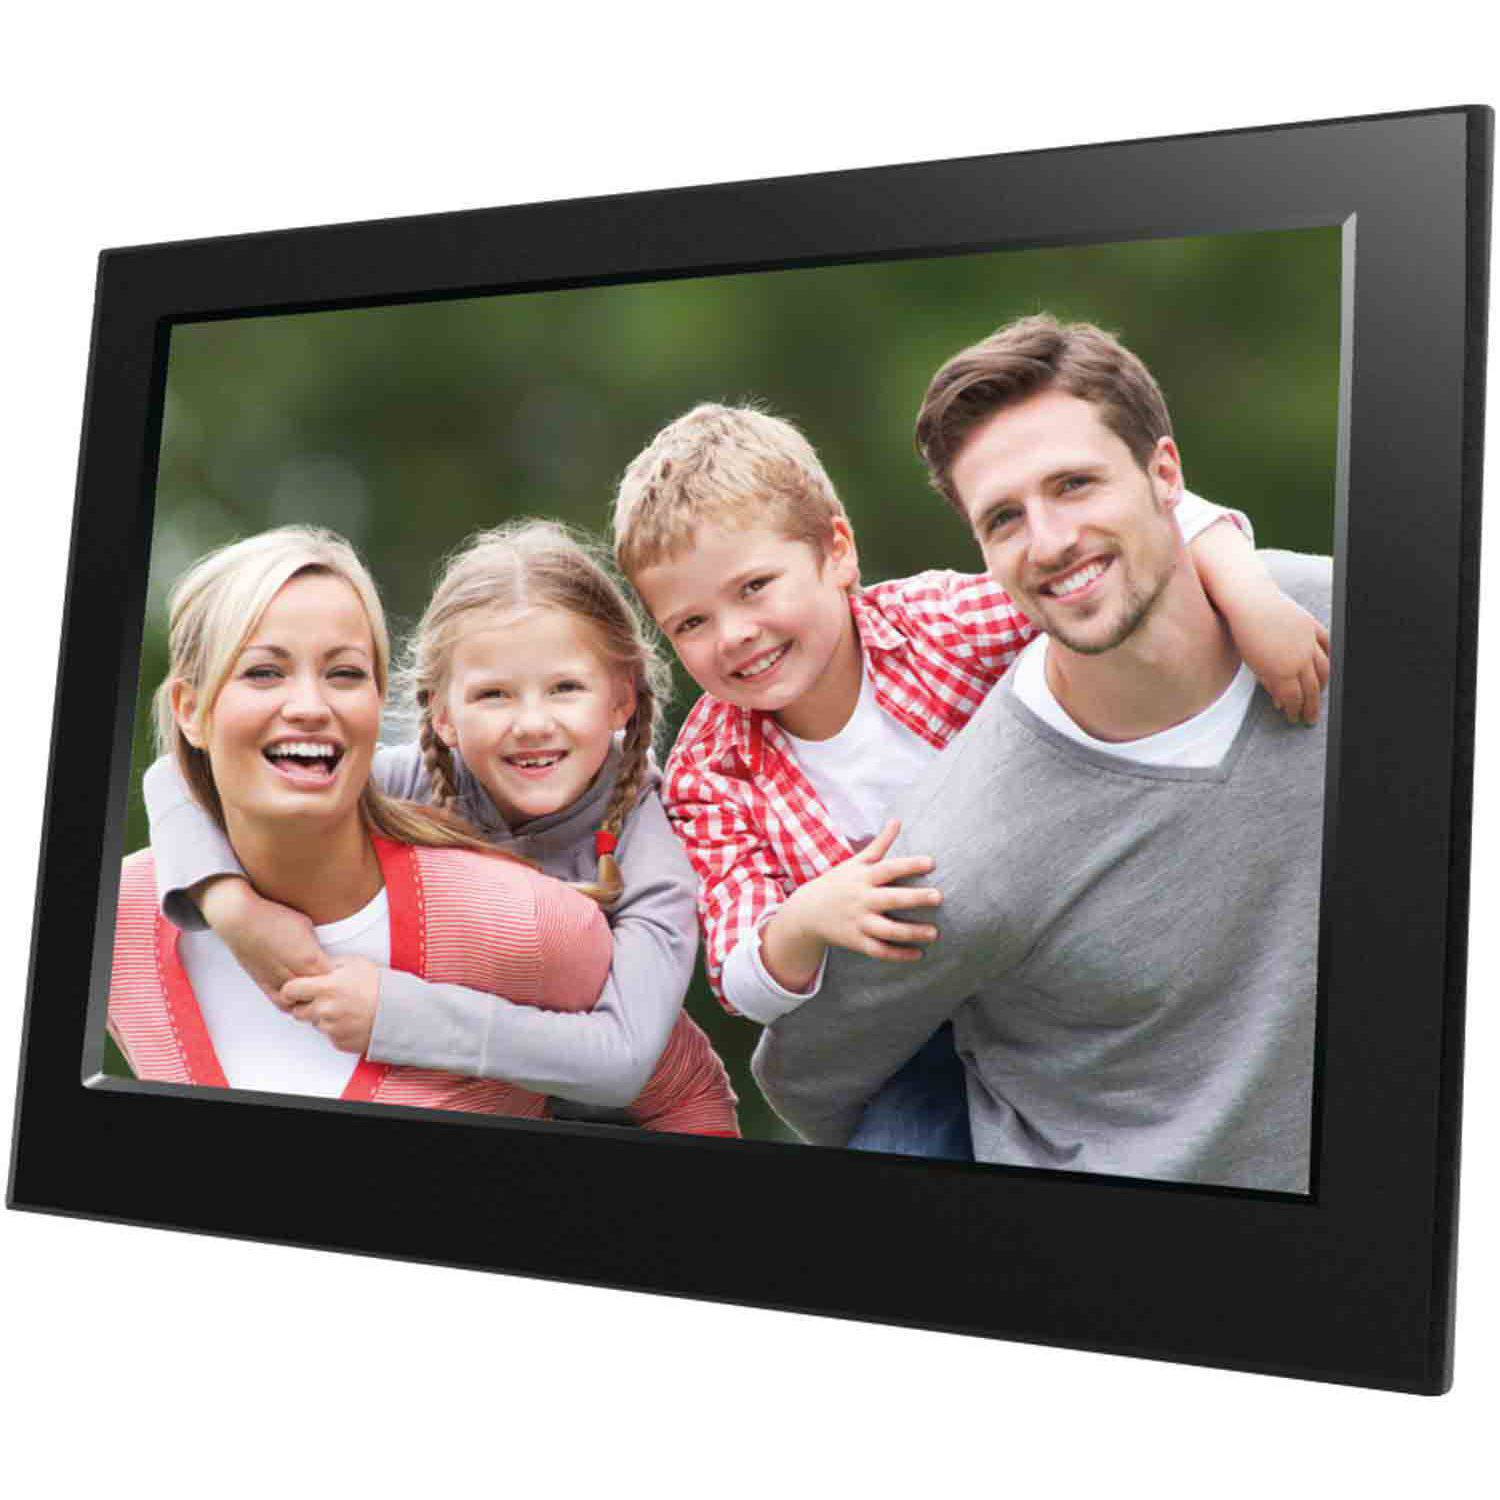 aluratek adpf08sf 8digital photo frame 800x600 hi resolution with auto slideshow walmartcom